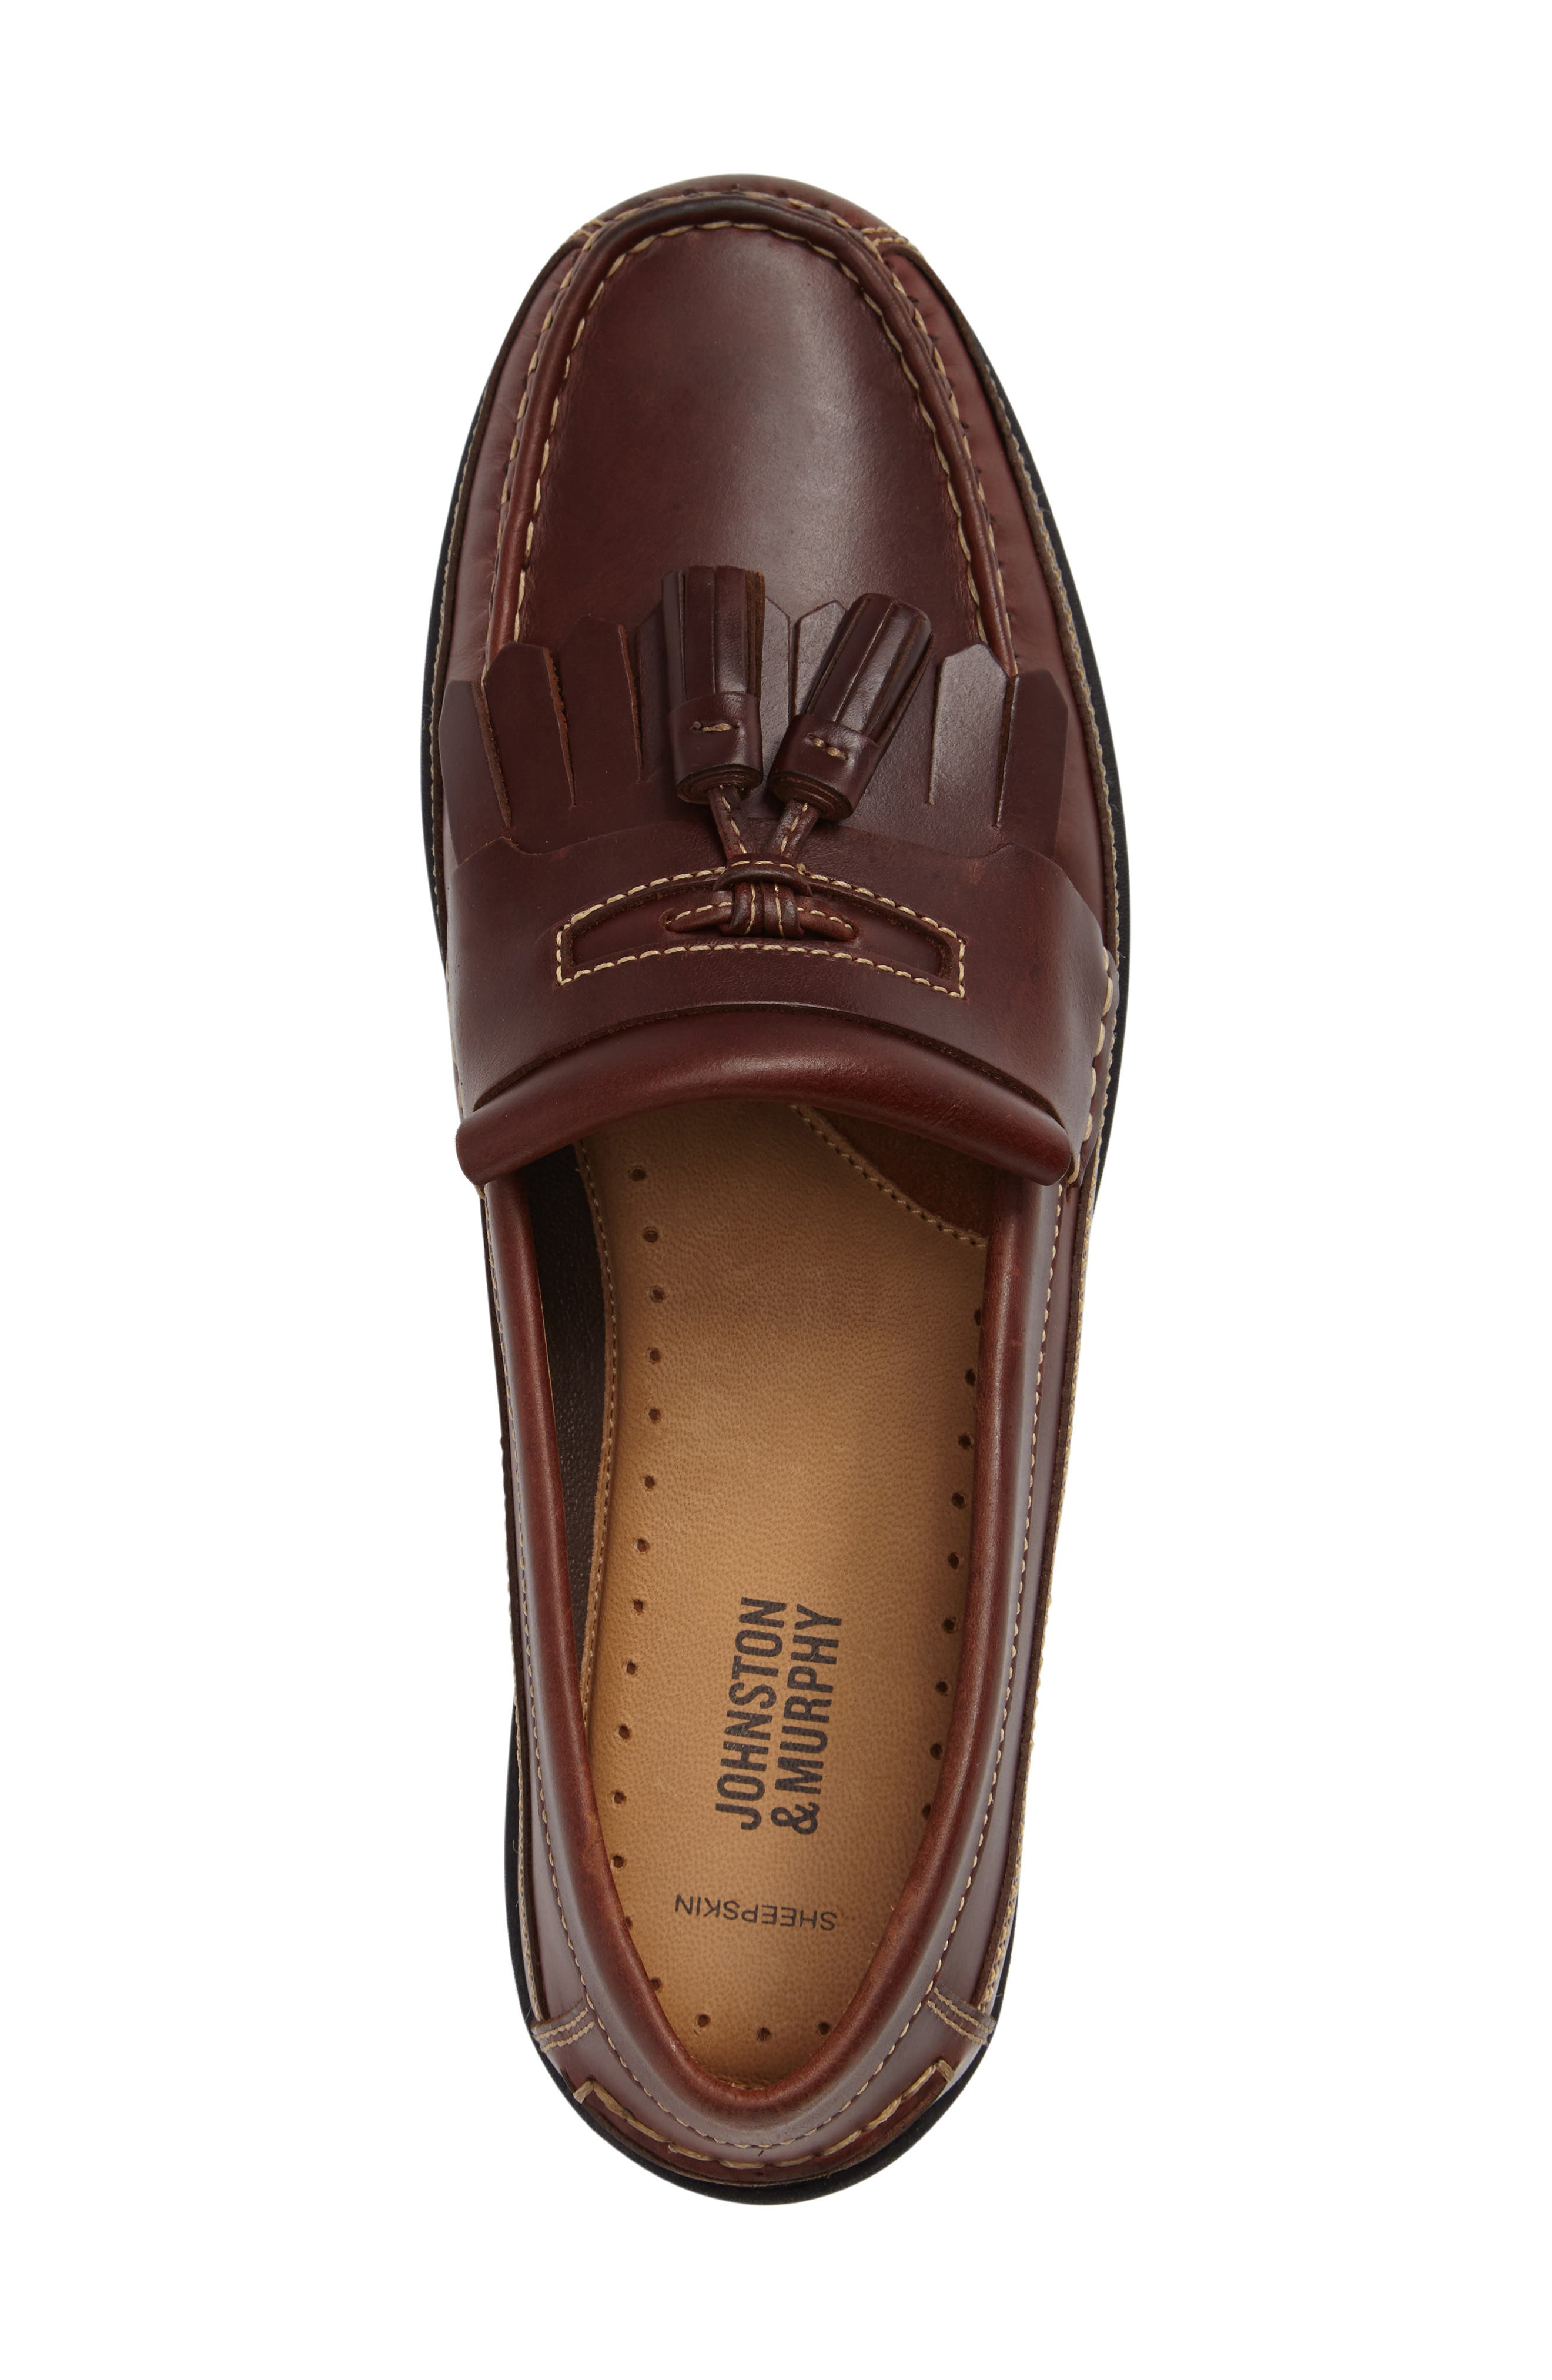 Fowler Kiltie Tassel Loafer,                             Alternate thumbnail 3, color,                             206